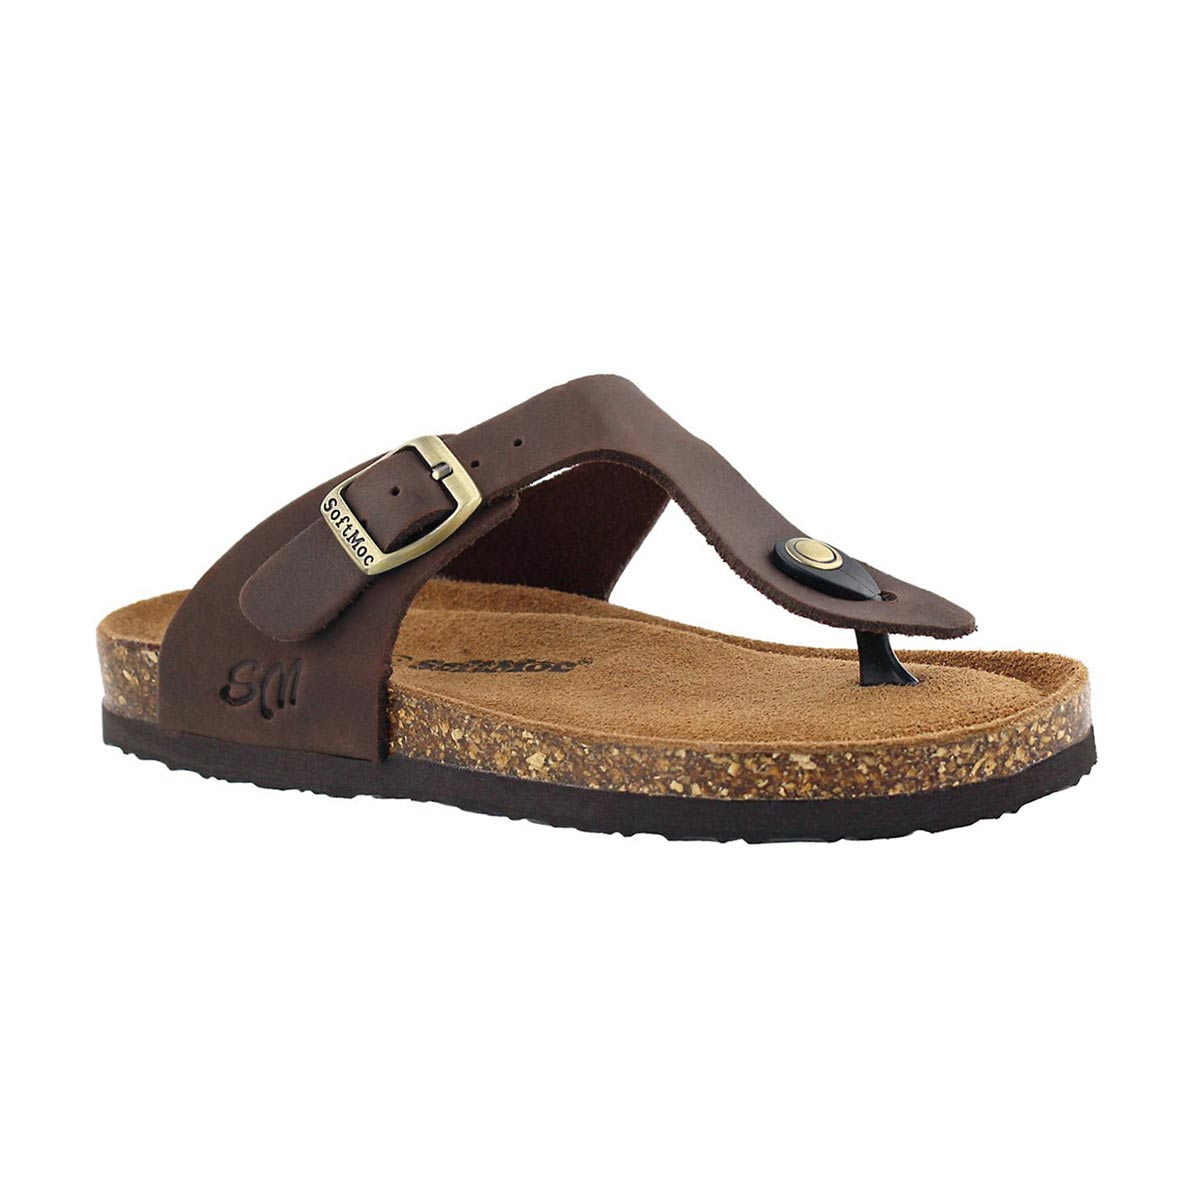 Girls' ANGY 5 brown memory foam thong sandals